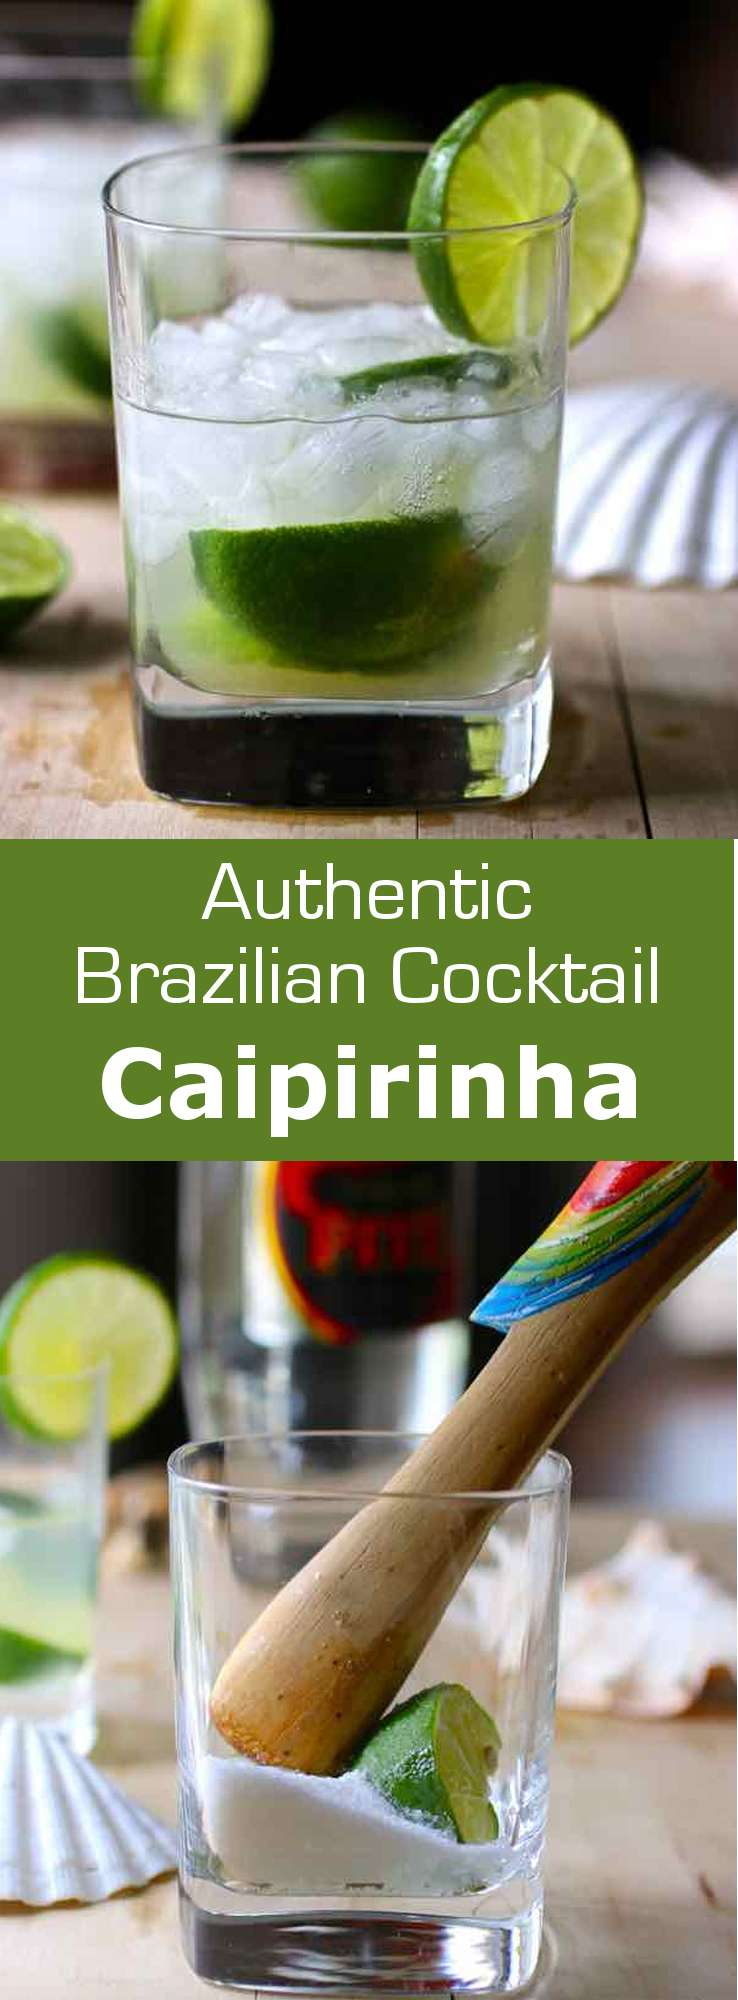 Caipirinha Authentic Brazilian Recipe 196 Flavors